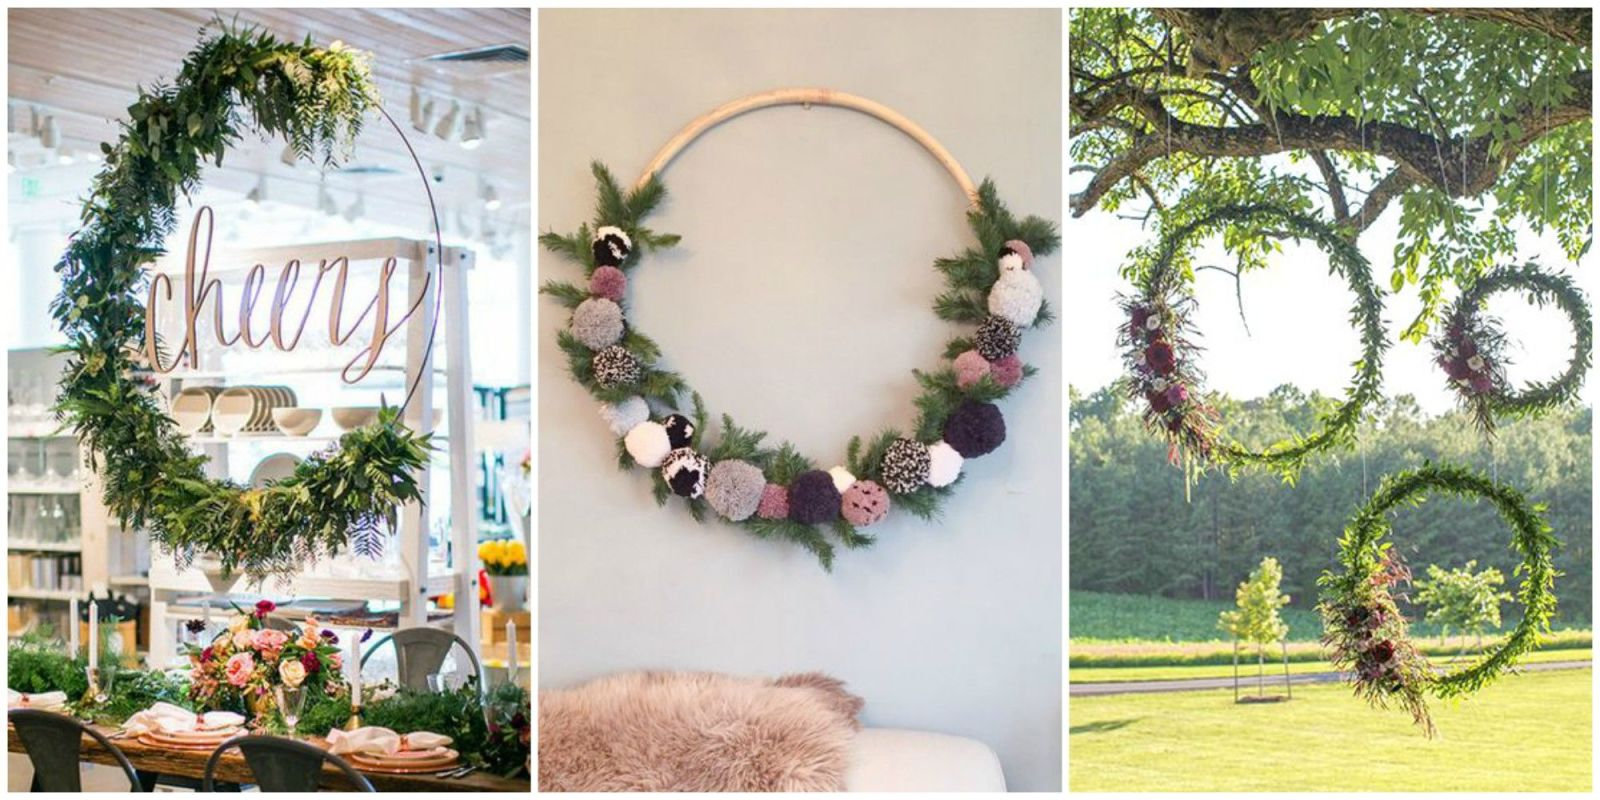 How to make large hula hoop wreaths for spring diy large for Landscape decor